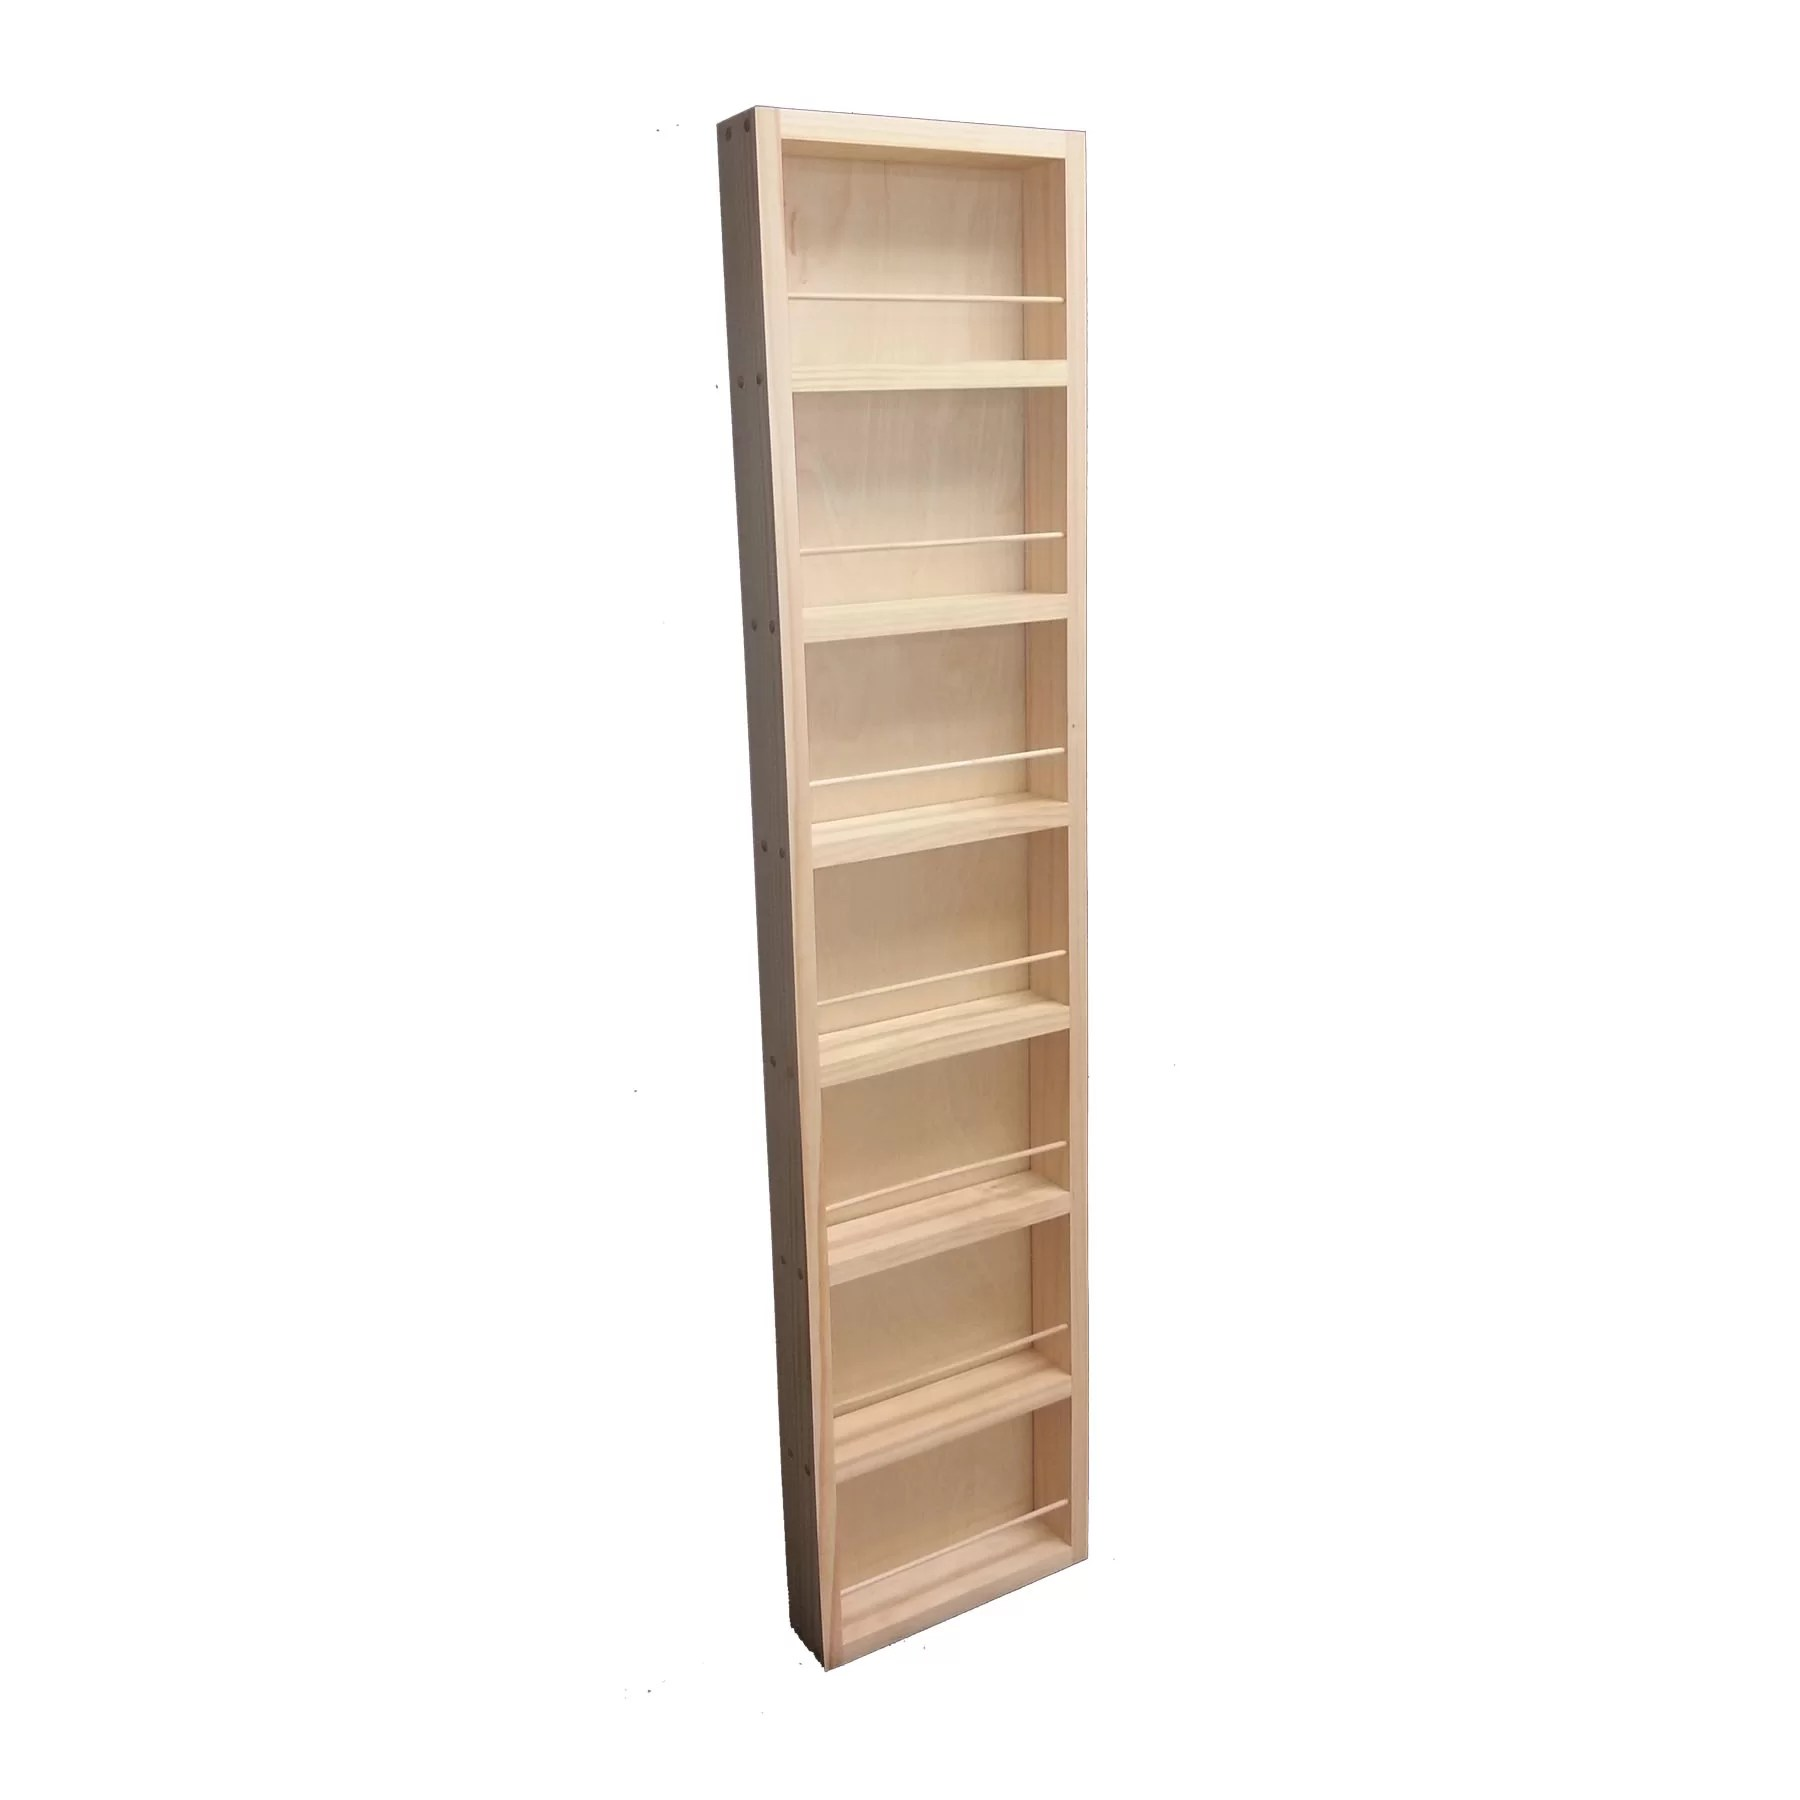 Wg Wood Products Midland Wall Mounted Spice Rack Reviews